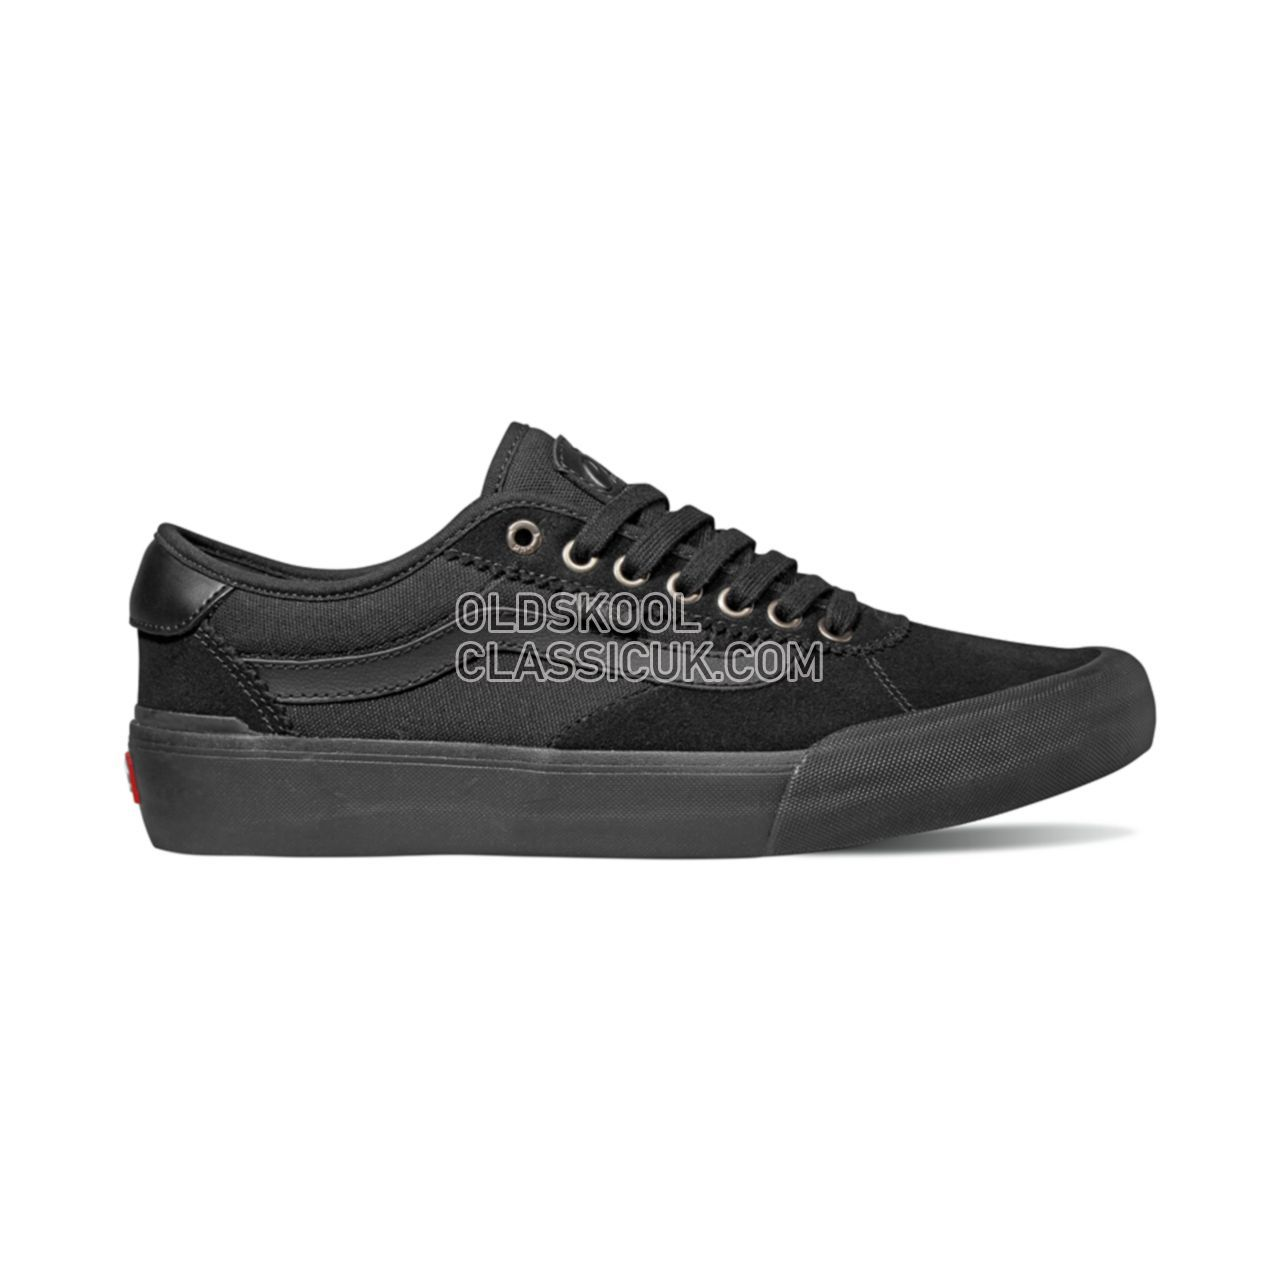 Vans Suede Chima Pro 2 Sneakers Mens (Suede) Blackout VN0A3MTIQ3B Shoes